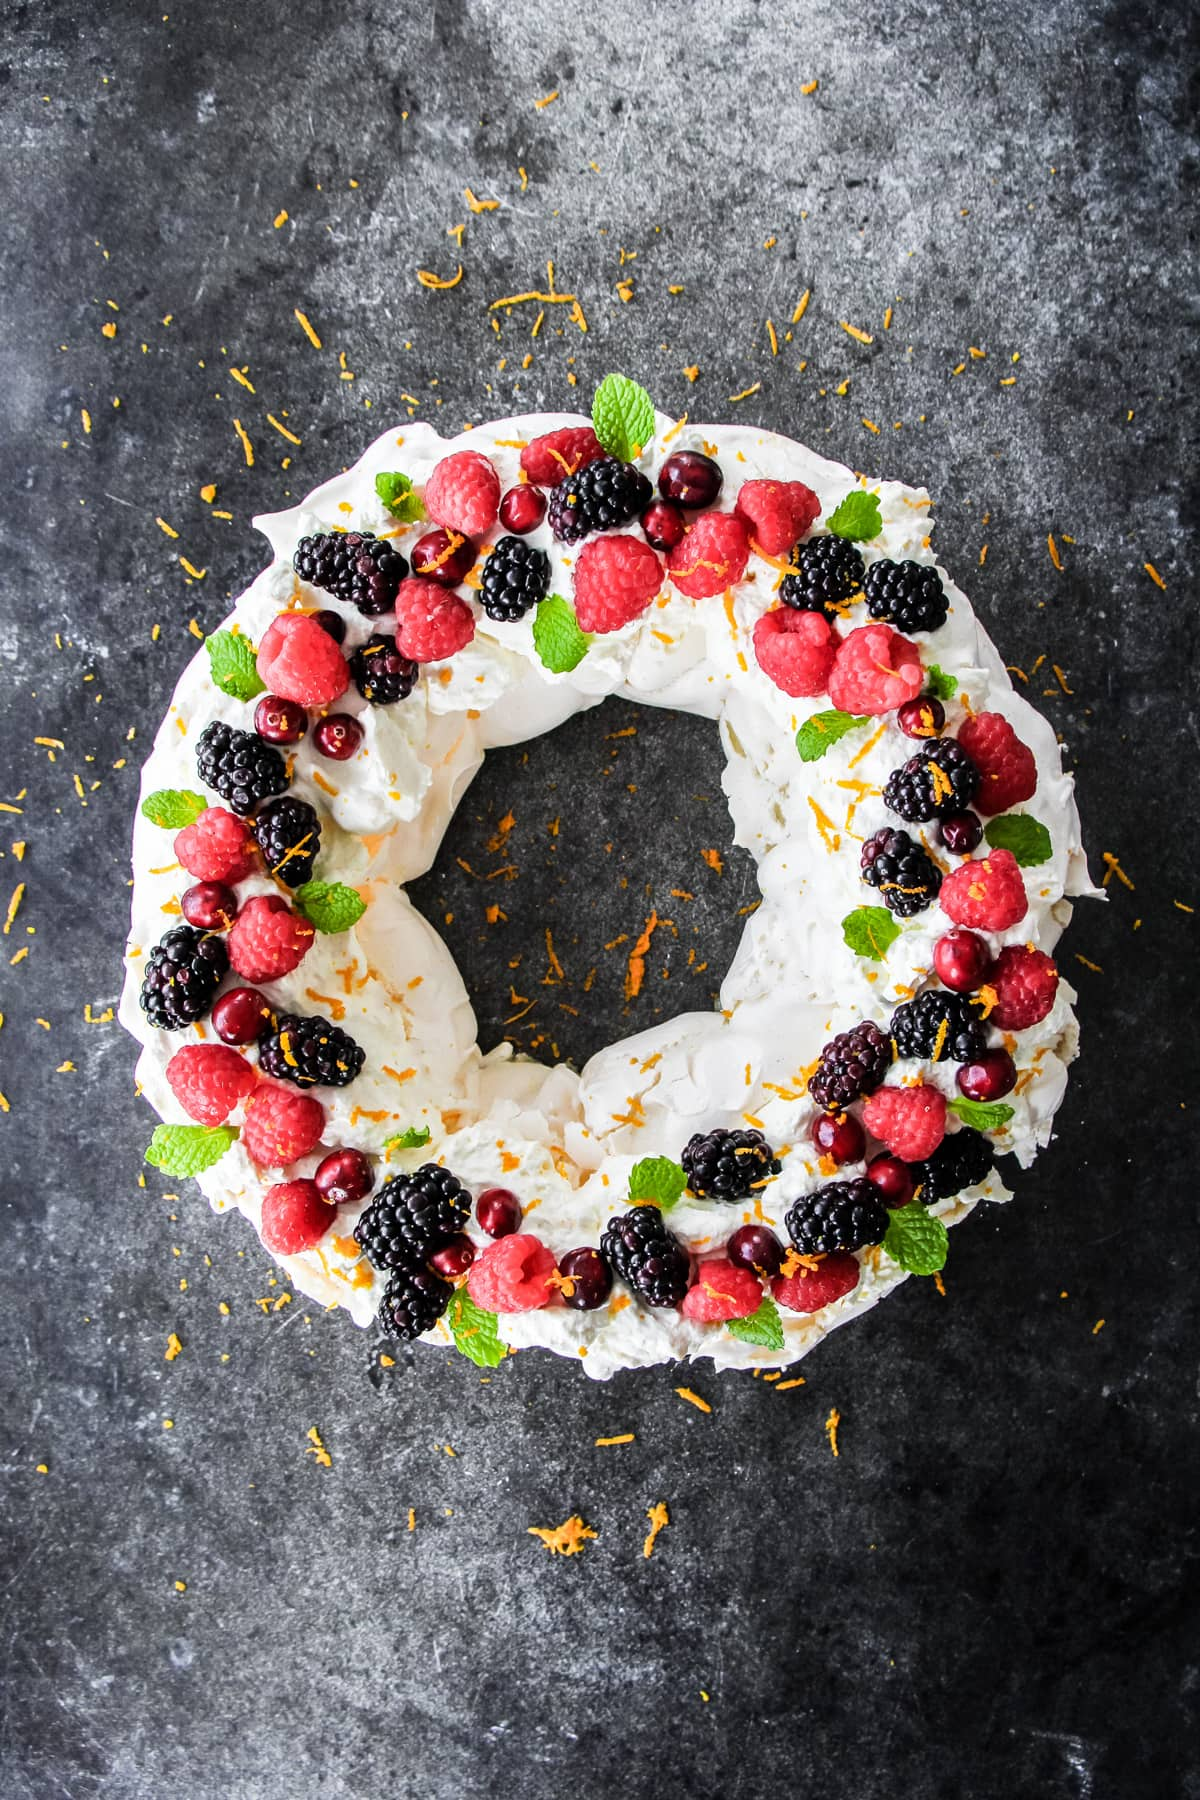 A top down view of a pavlova in the shape of a circle (wreath), decorated with fresh raspberries, blackberries, cranberries, mint leaves and orange zest!